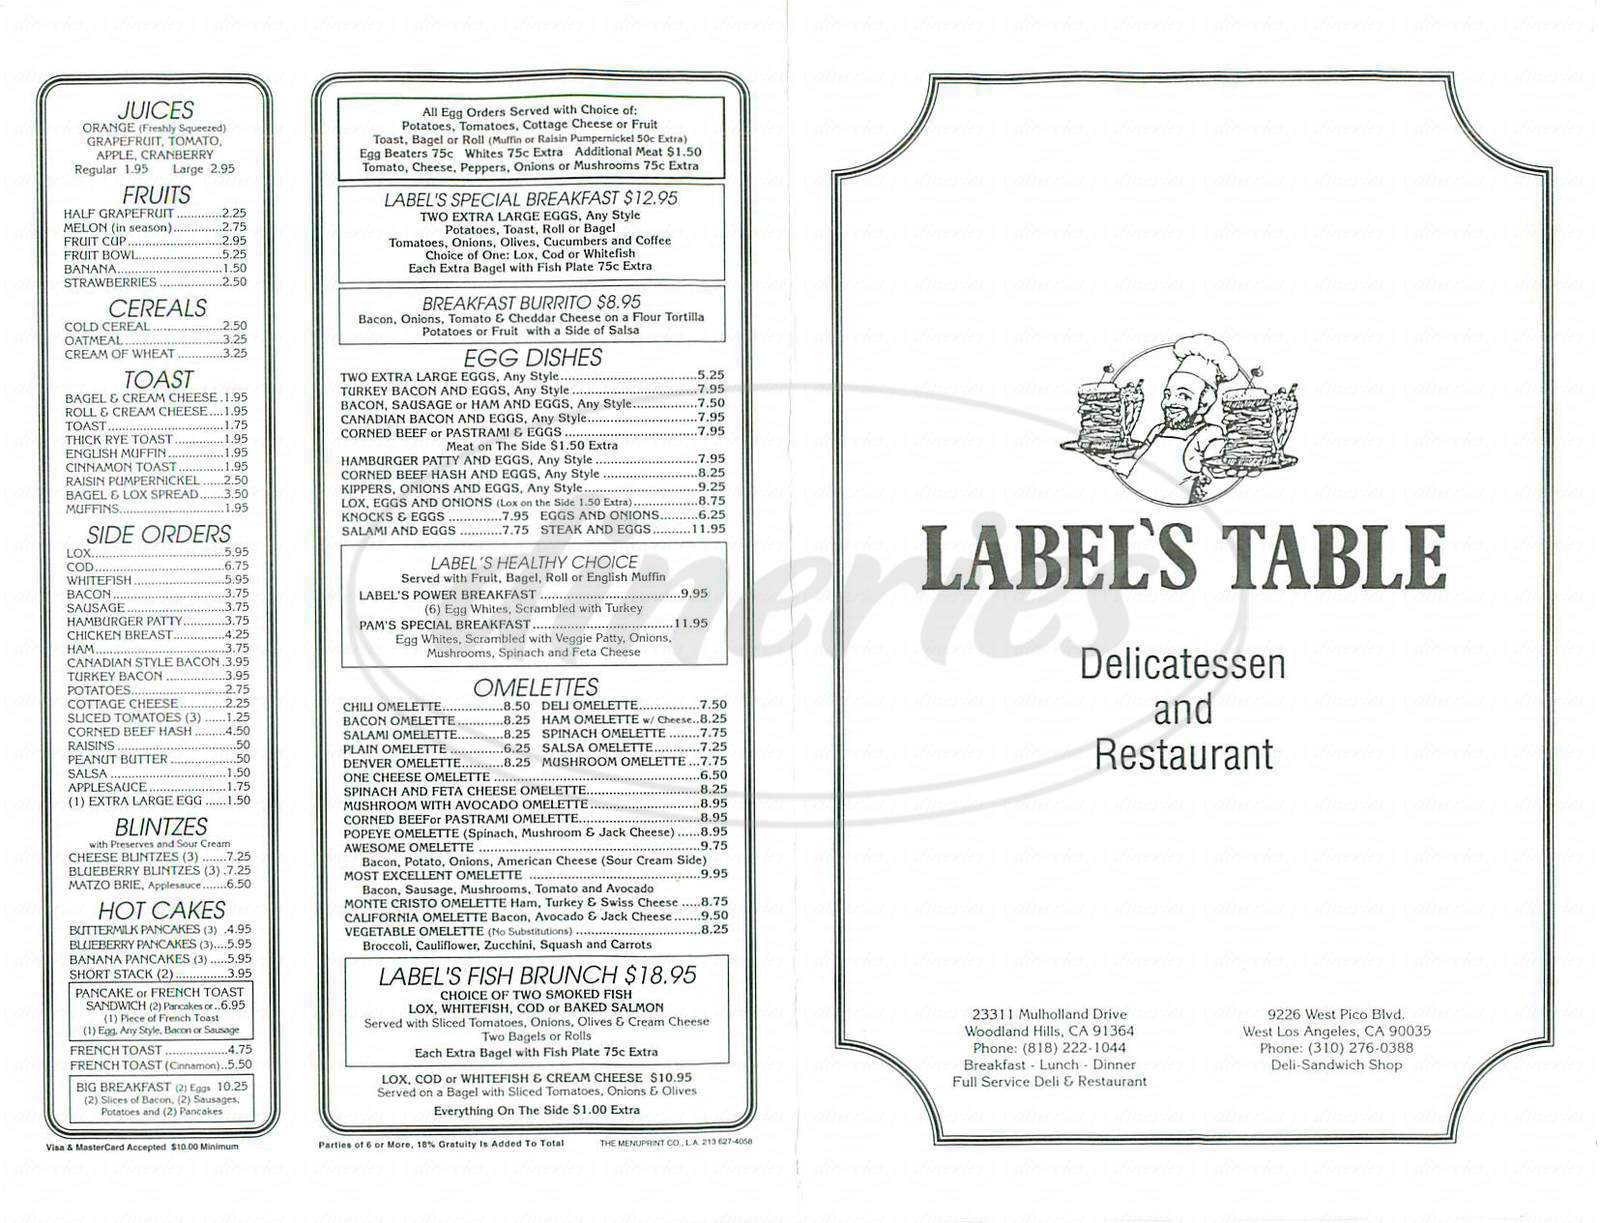 menu for Label's Table